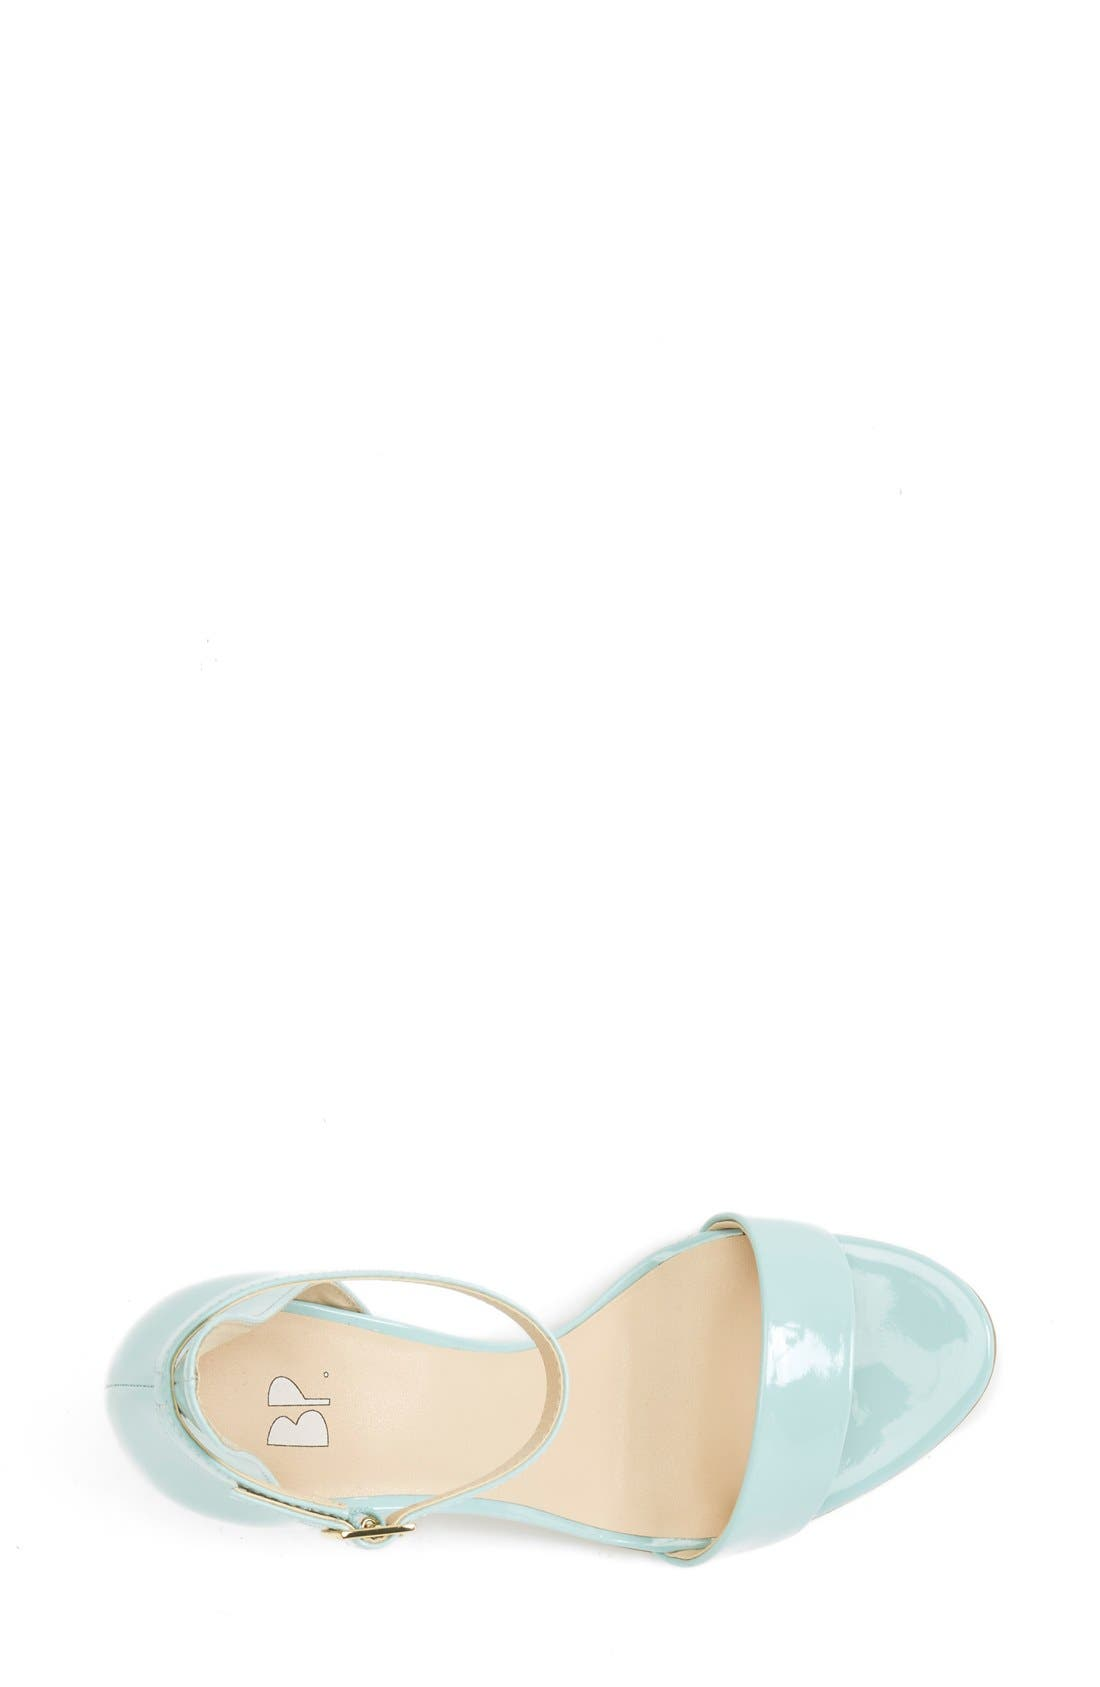 'Luminate' Open Toe Dress Sandal,                             Alternate thumbnail 79, color,